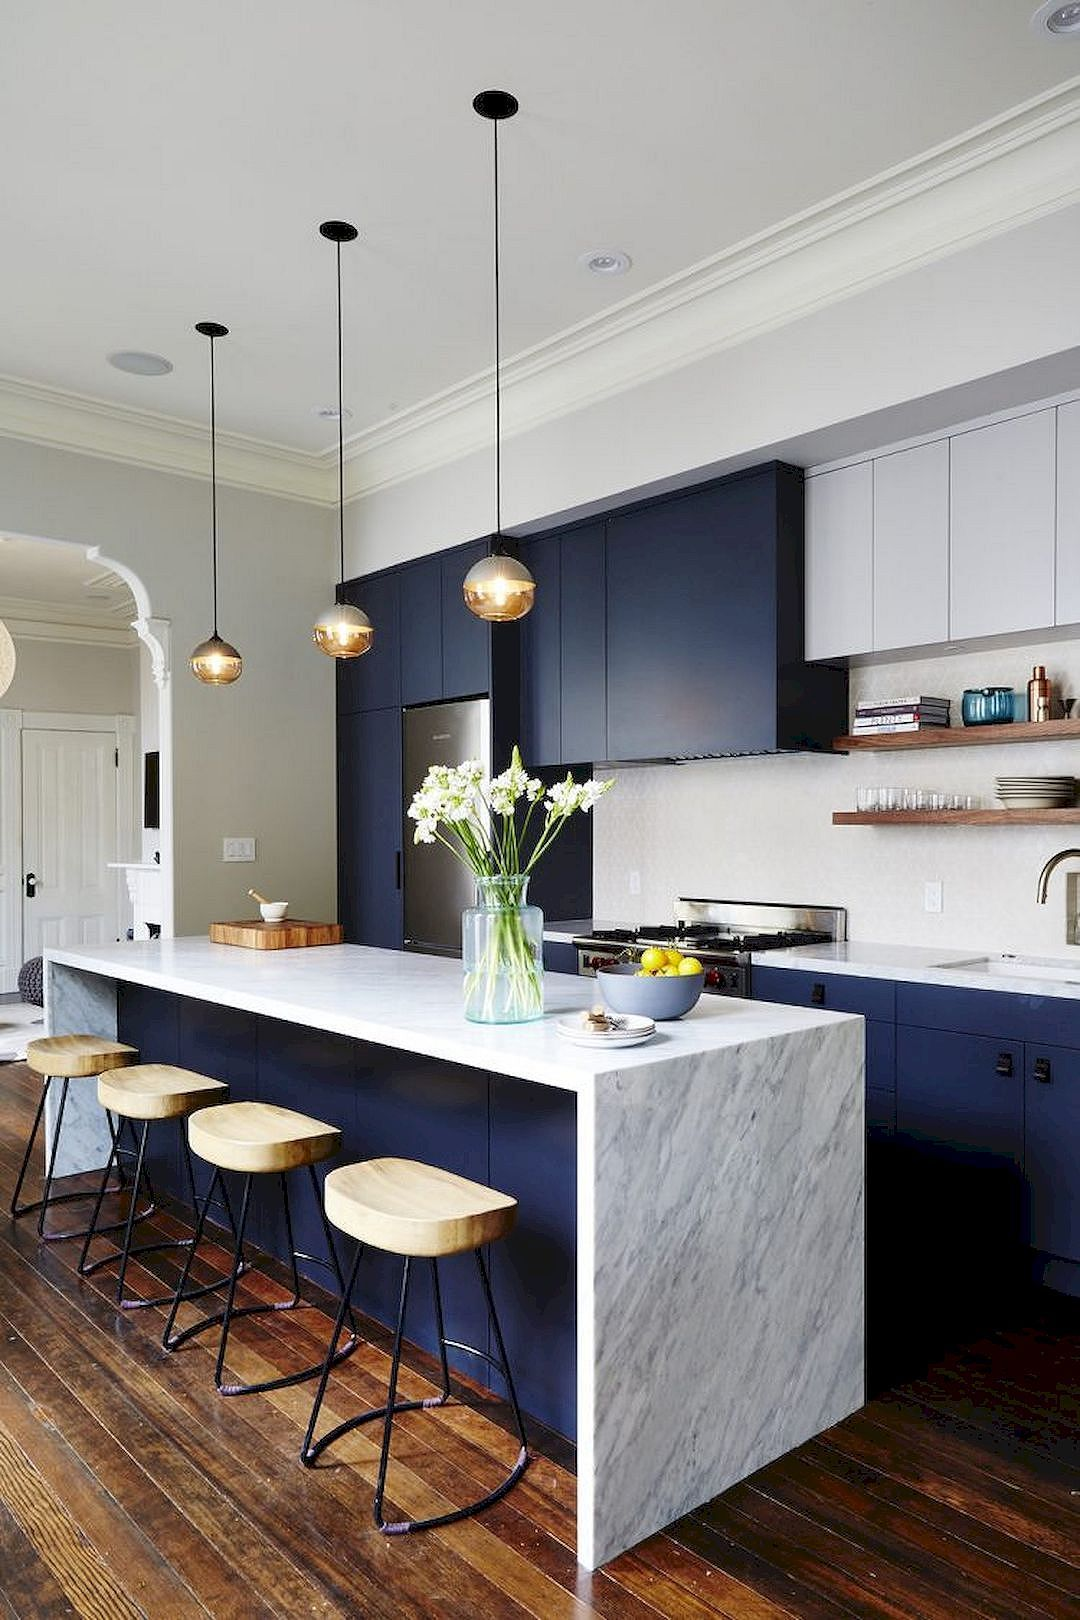 Perfectly Designed Modern Kitchen Inspirations 165 Photos Modern Kitchen Design Kitchen Interior Kitchen Design